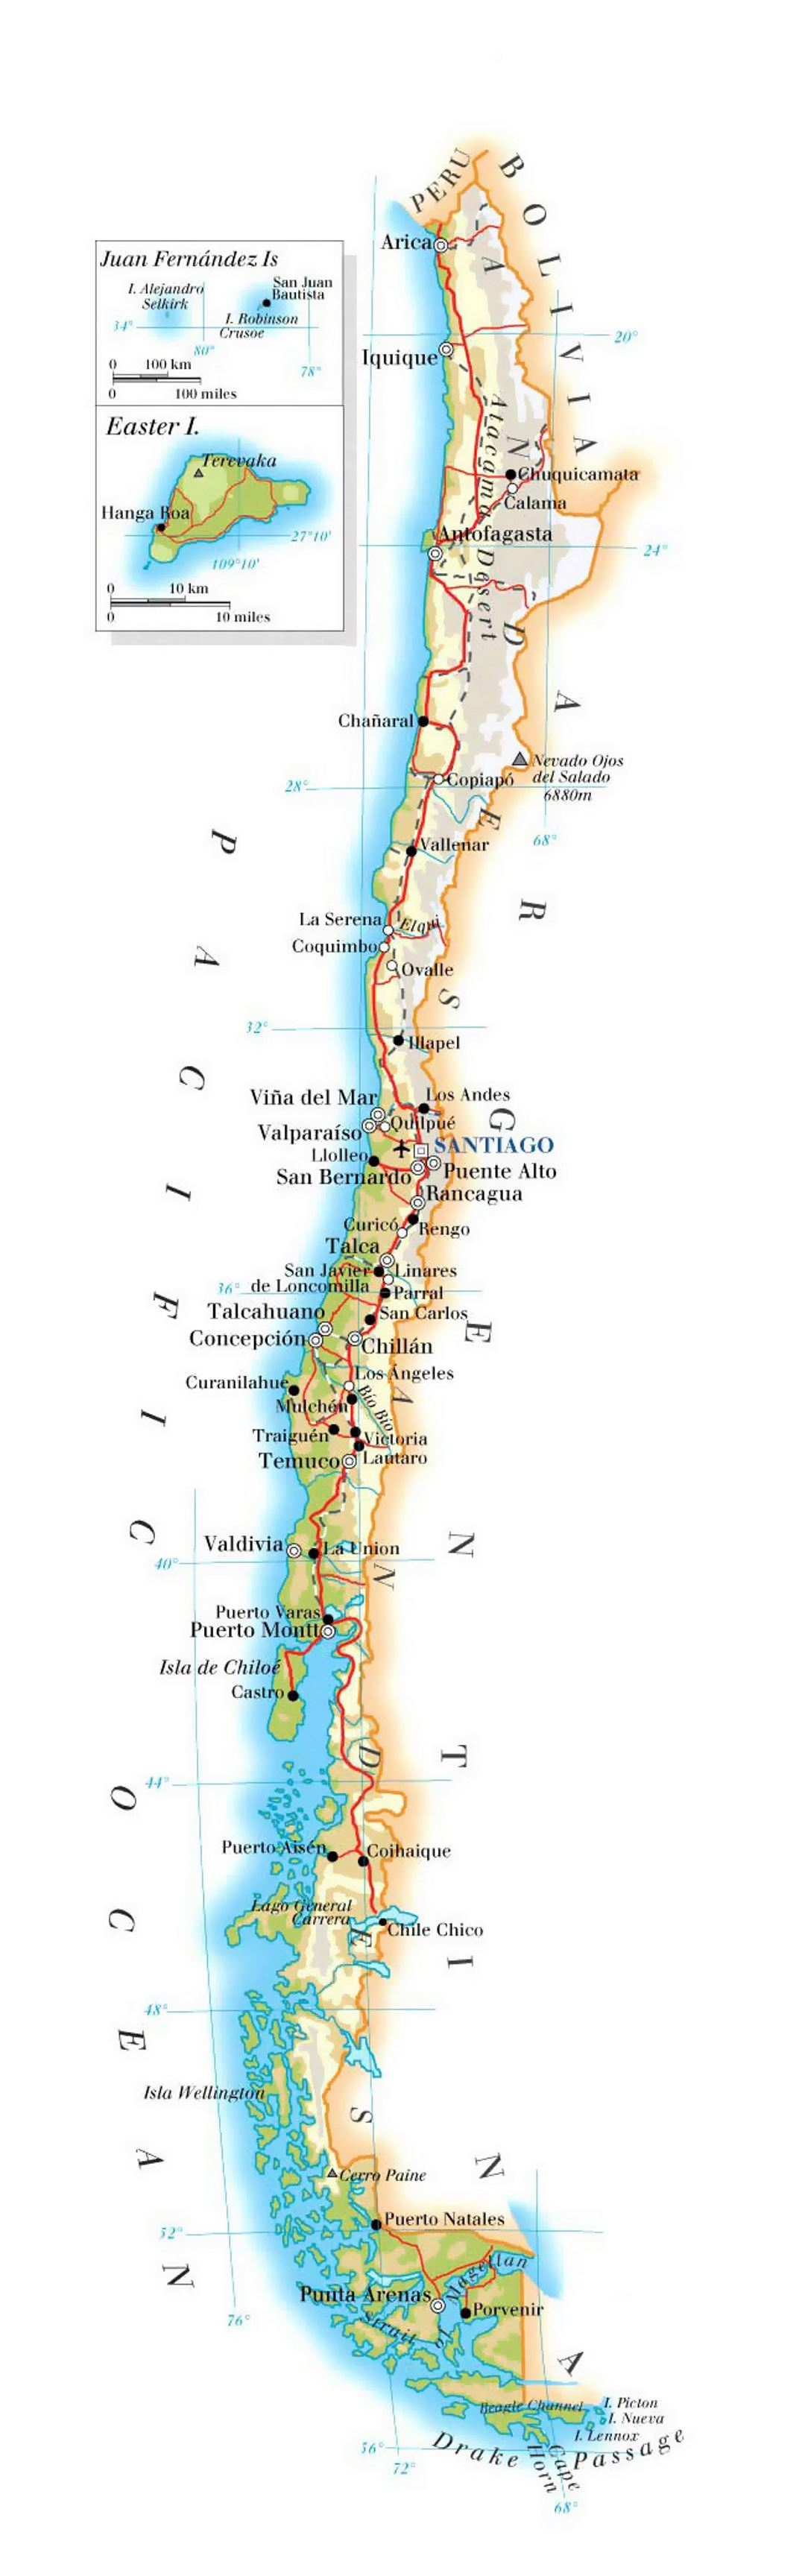 Detailed Elevation Map Of Chile With Roads Cities And Airports - Chile map